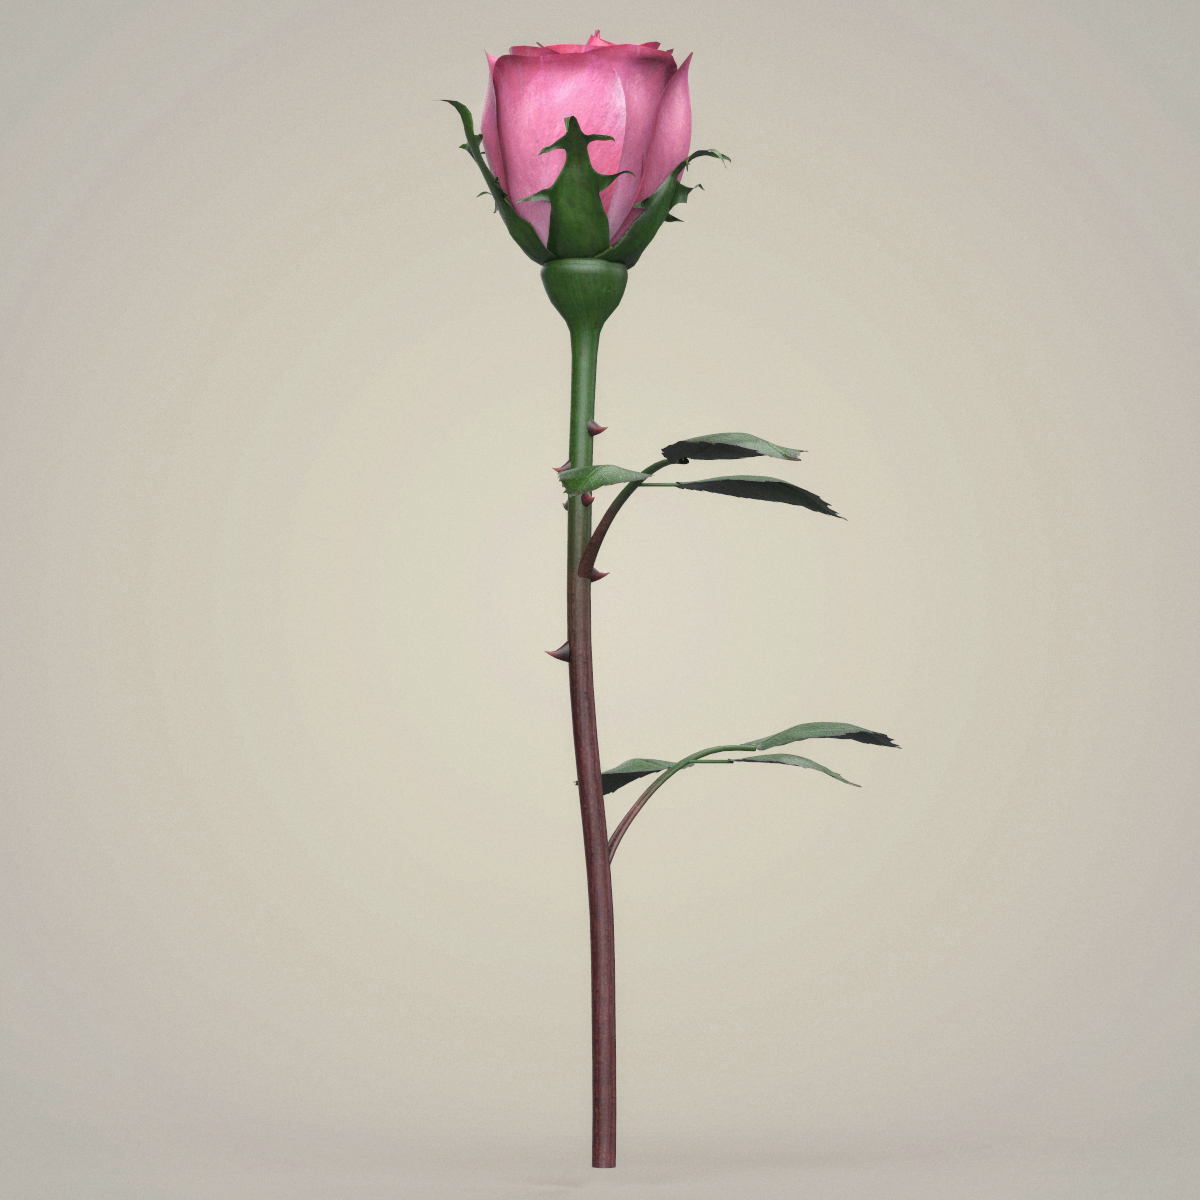 rose flower collection 3d model max fbx c4d ma mb obj 252761